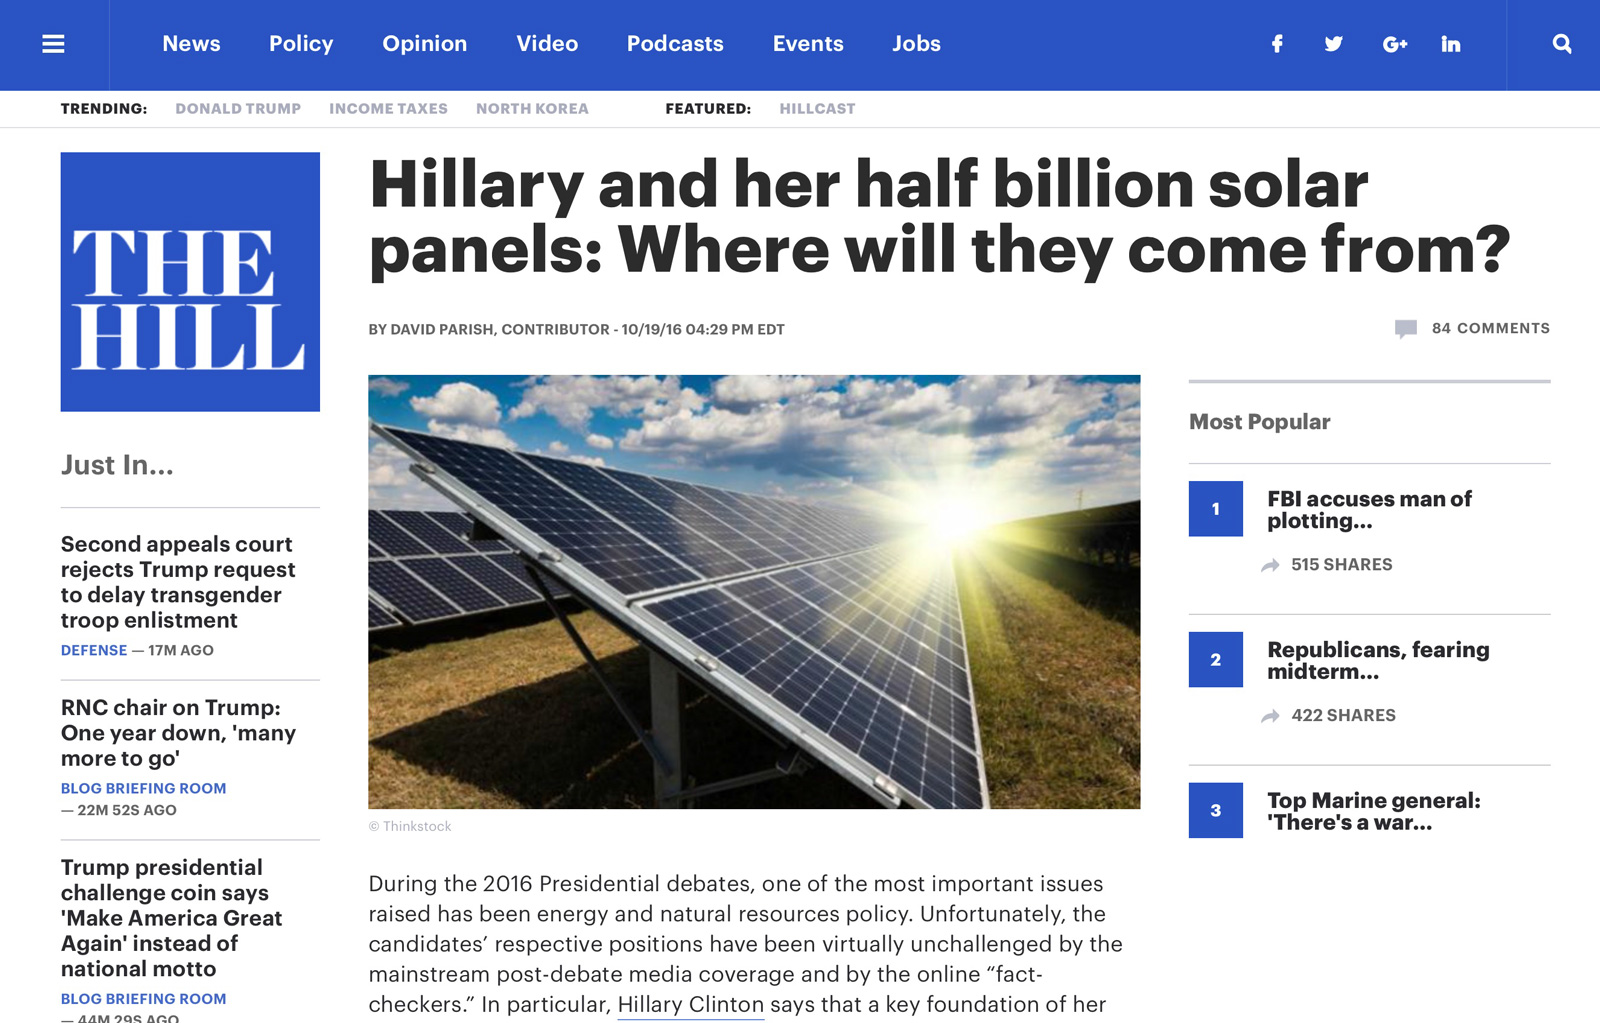 Hillary and her half billion solar panels